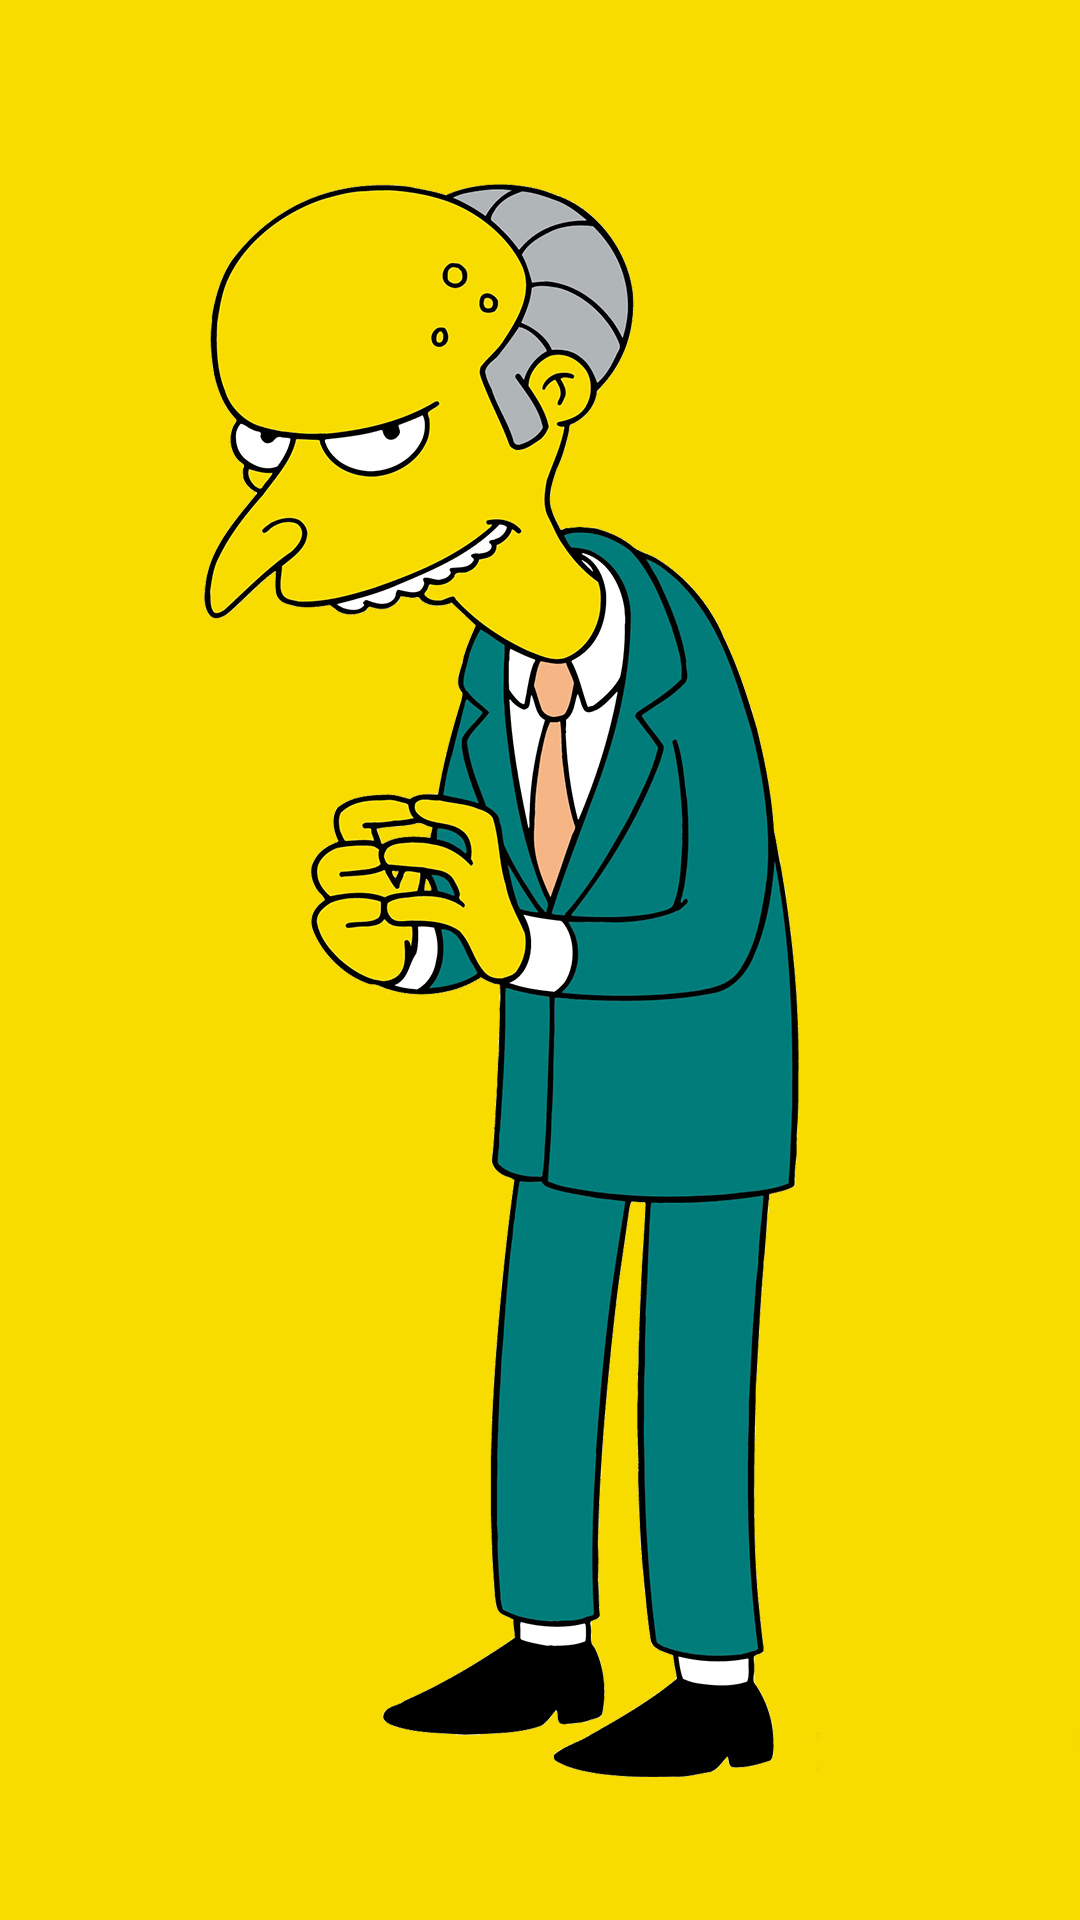 Iphone 5 Wallpaper Dimensions Mr Burns Hd Wallpaper For Your Mobile Phone